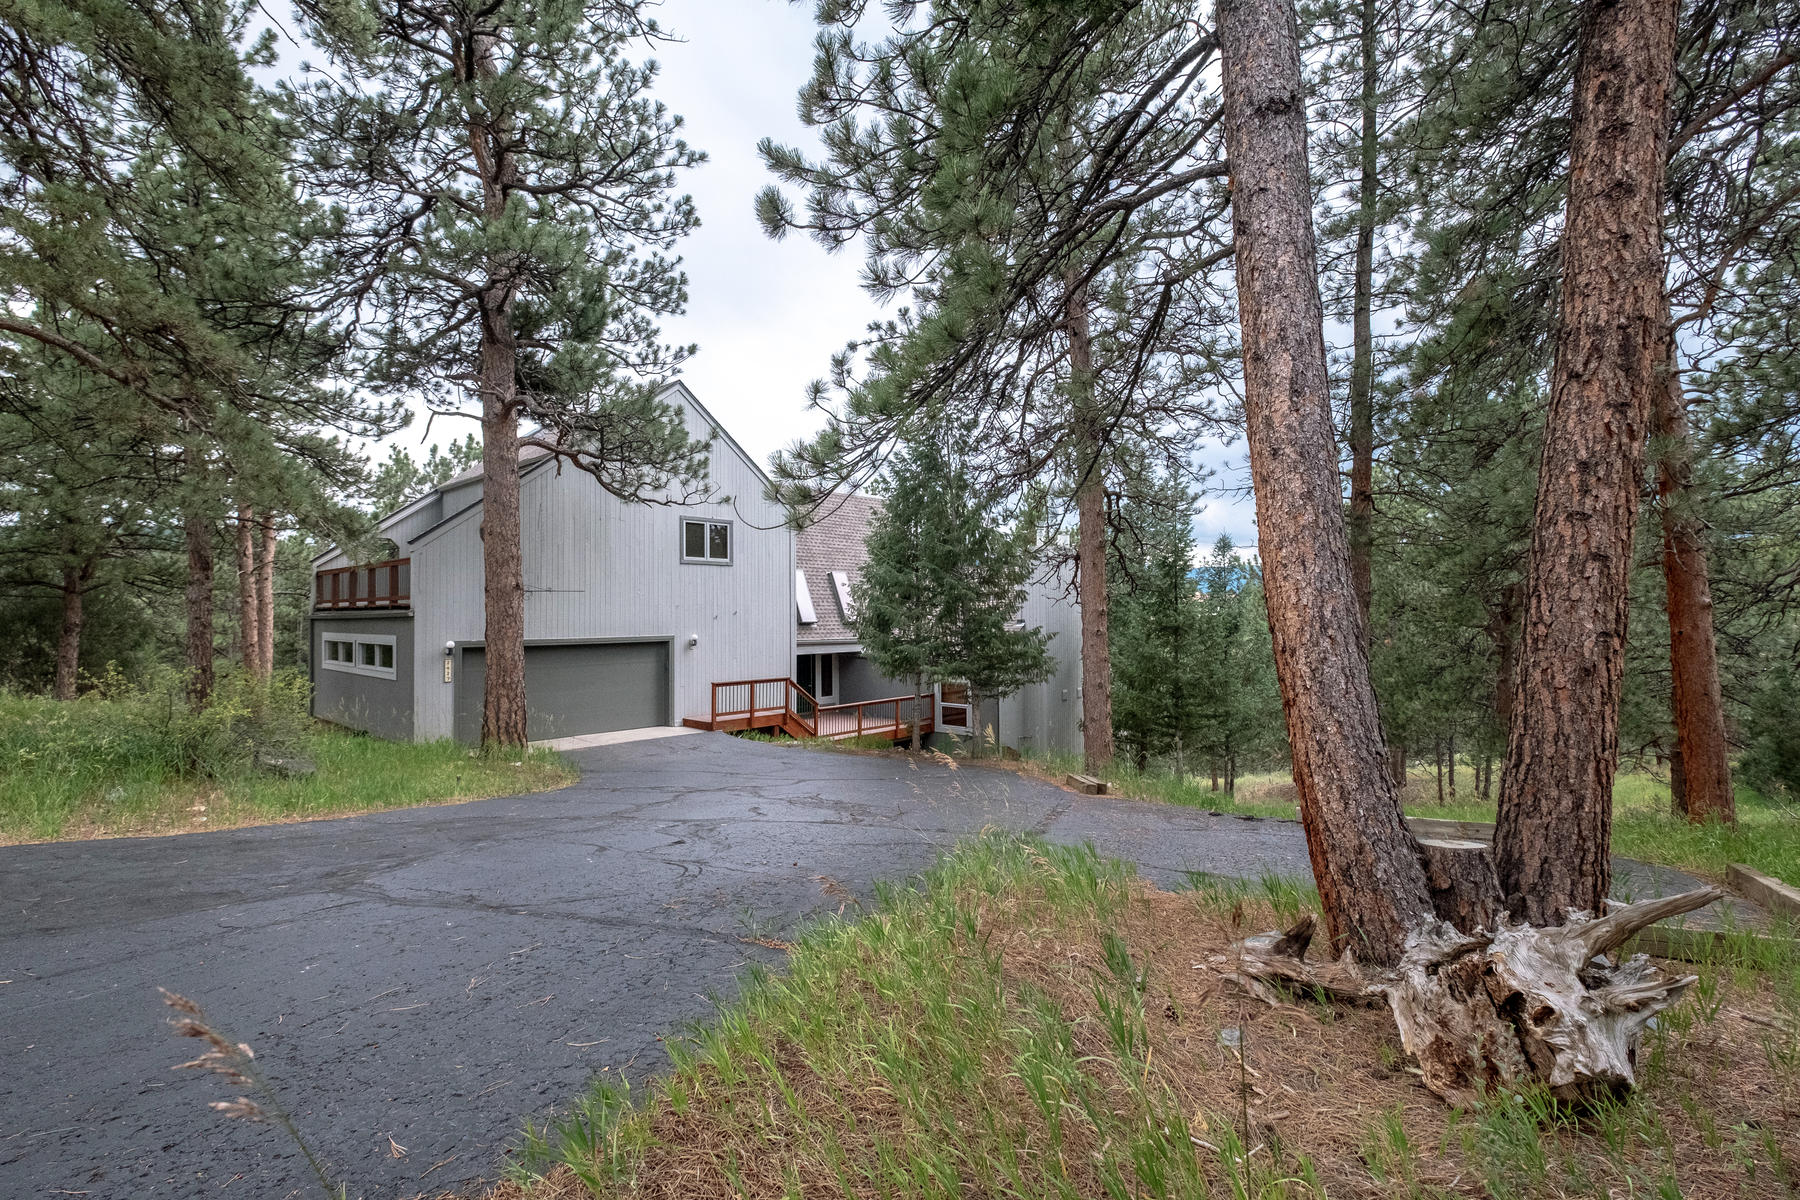 Additional photo for property listing at Tranquility Surrounded by Nature, Views, Privacy, Quietness 2427 Daisy Lane Golden, Colorado 80401 United States